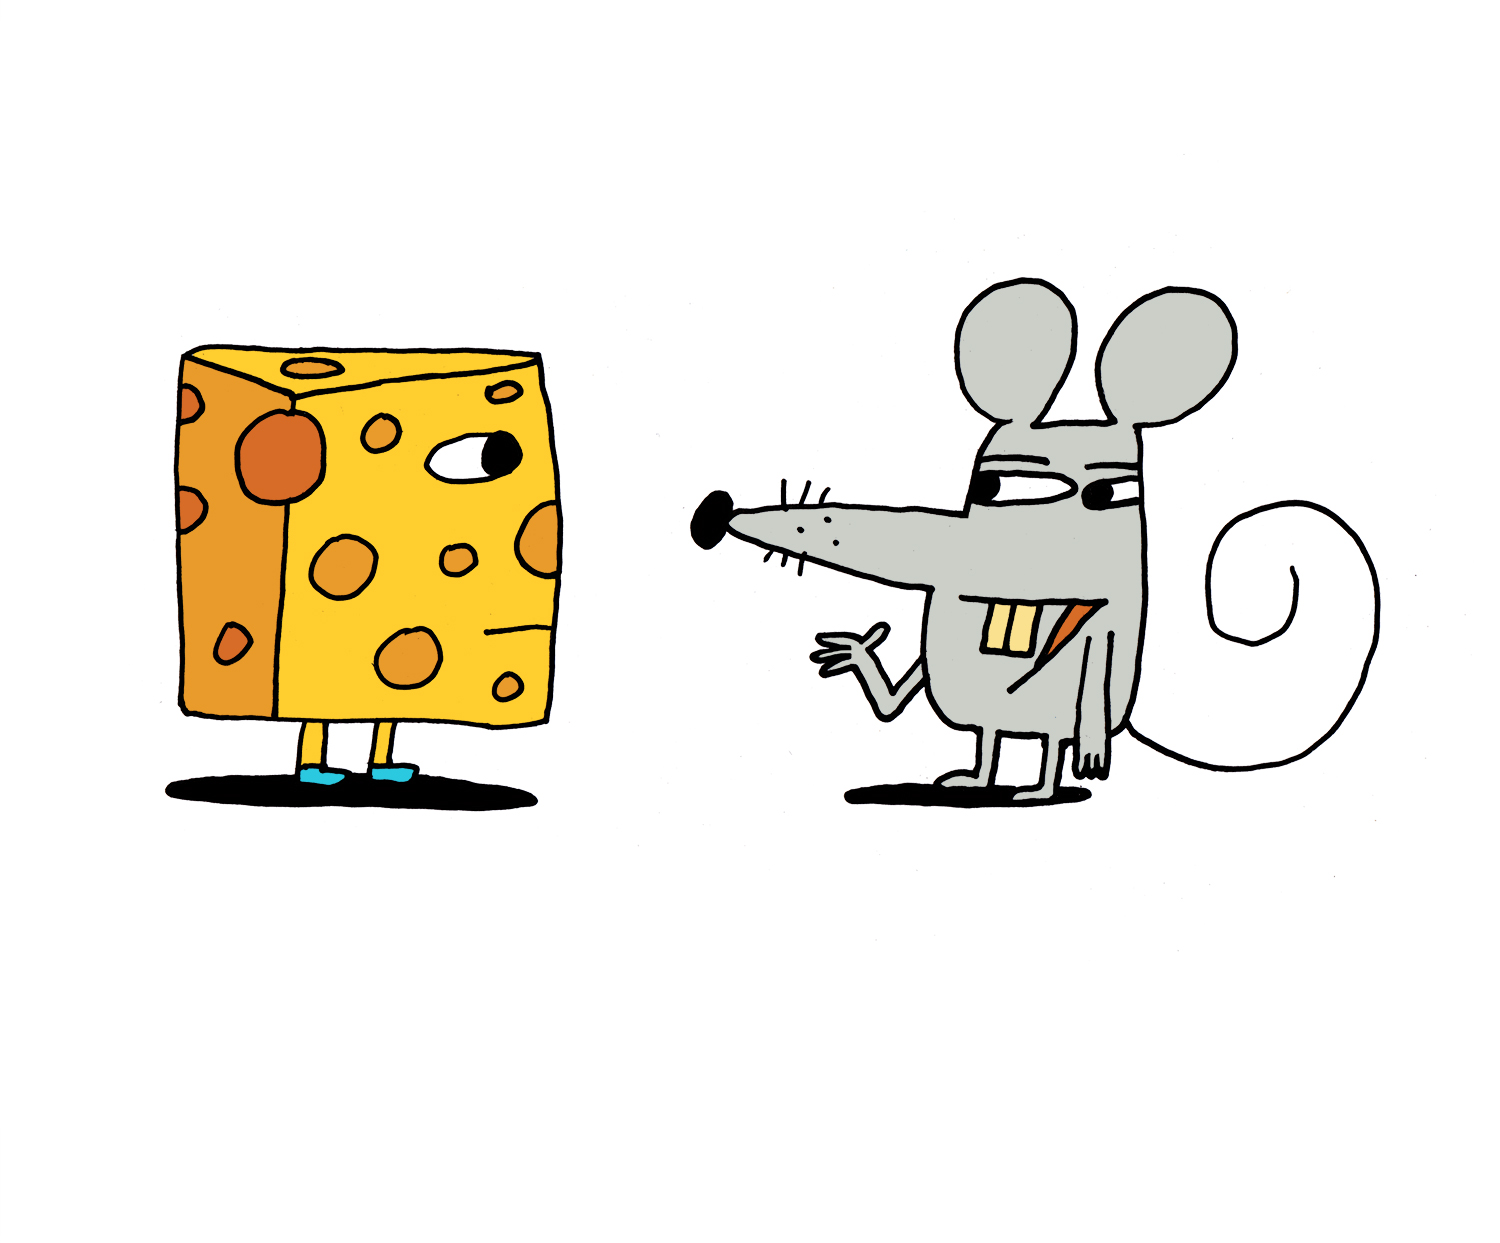 mouse_and_cheese_1500.jpg